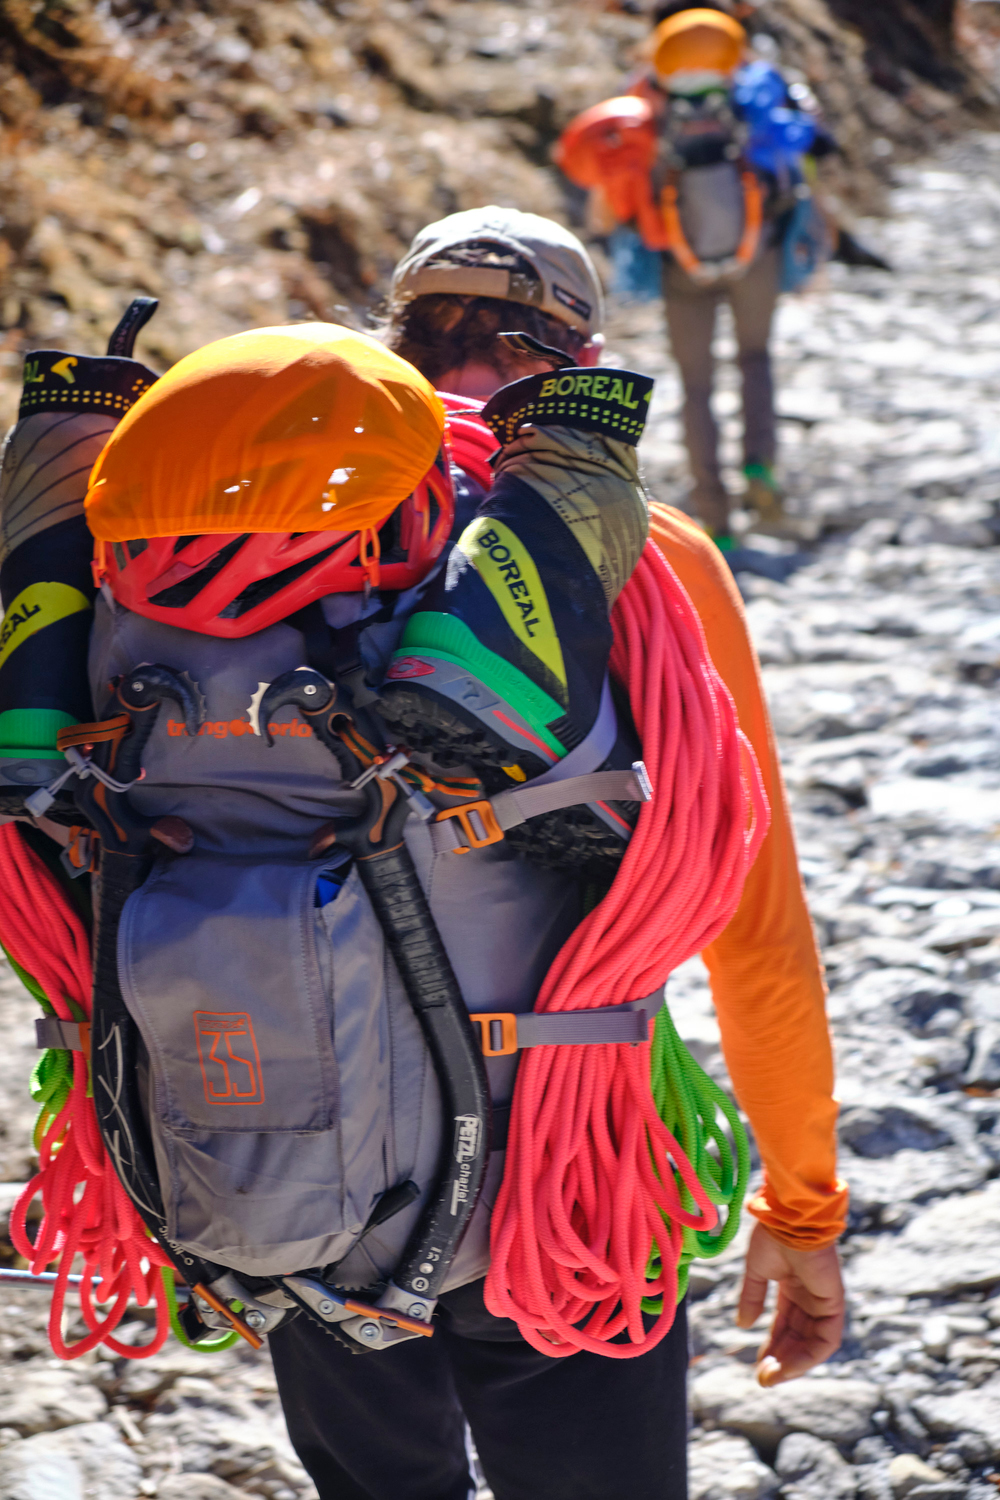 Two person carrying back packs with climbing equipment.